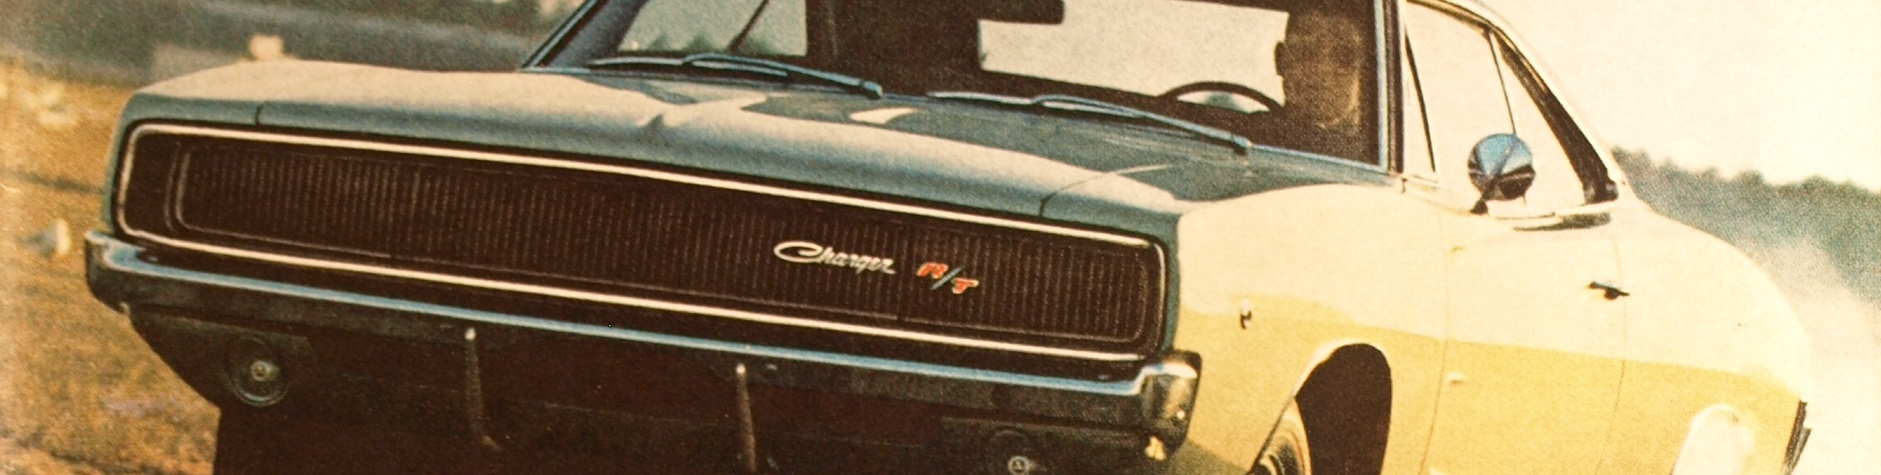 Front grille of the 1968 Charger R/T